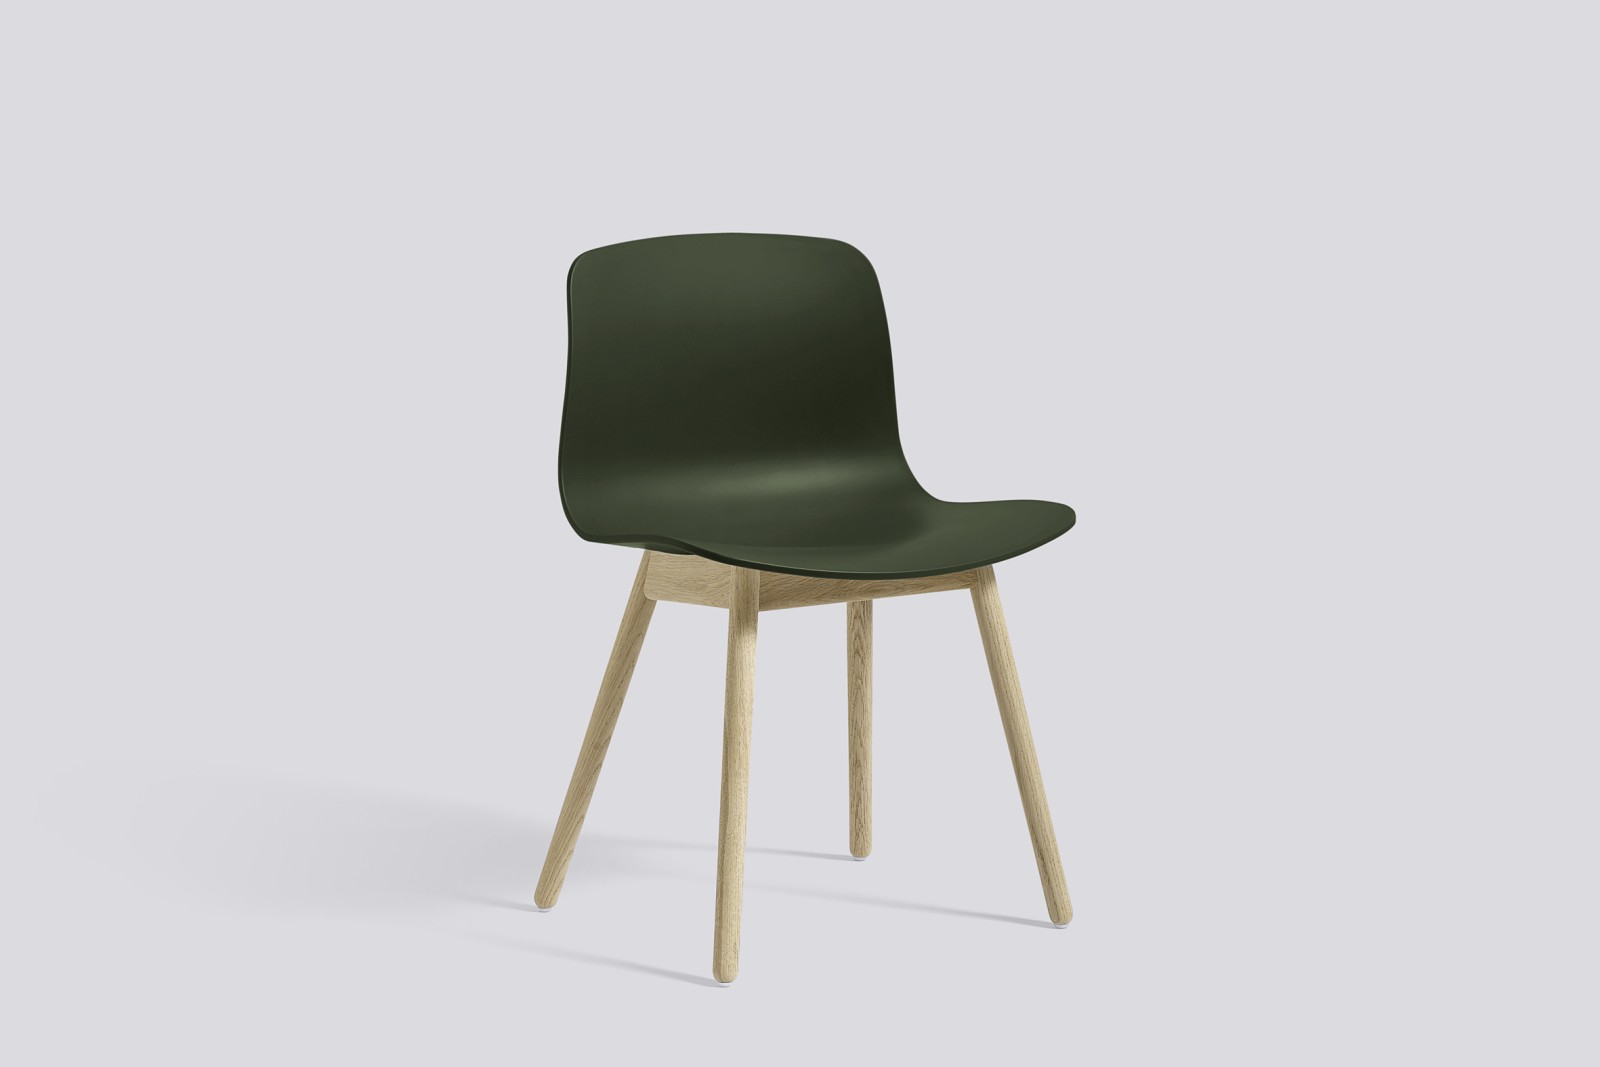 About A Chair AAC12 Green Seat and Soap Treated Oak Base